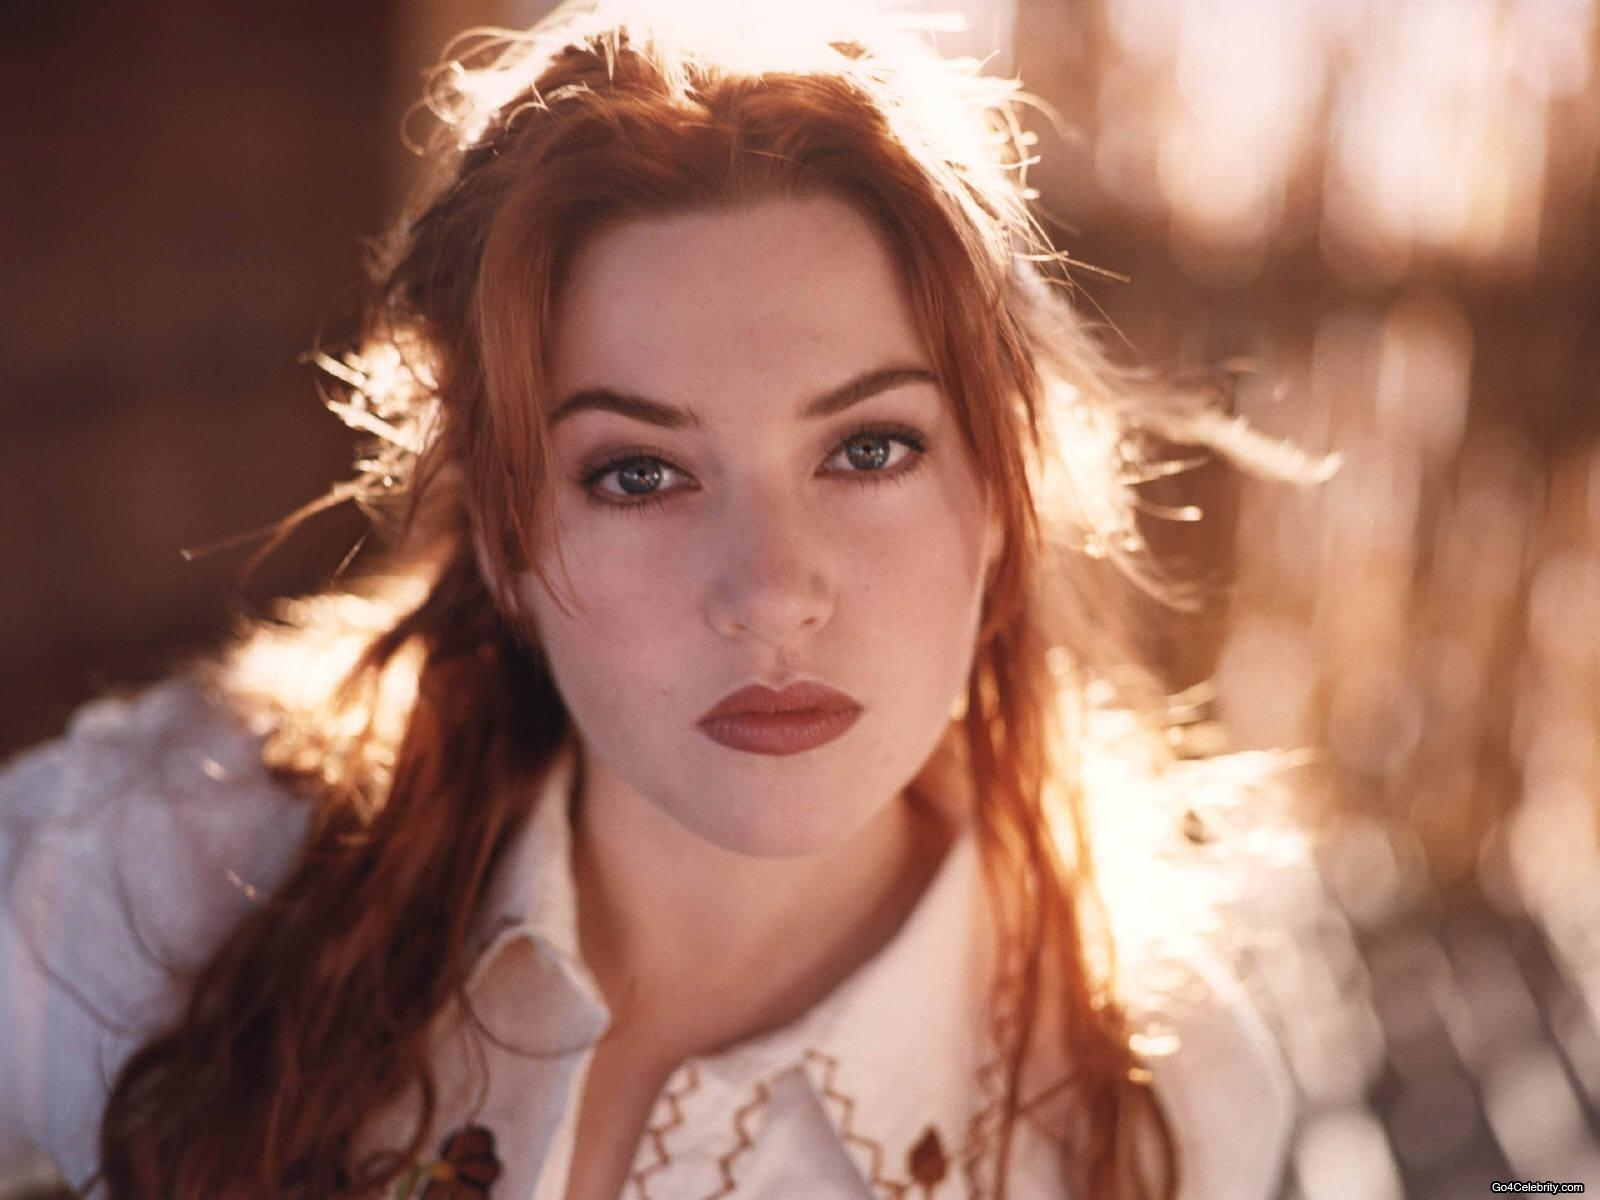 10 Latest Kate Winslet Titanic Pic FULL HD 1920×1080 For PC Desktop 2019 FREE DOWNLOAD